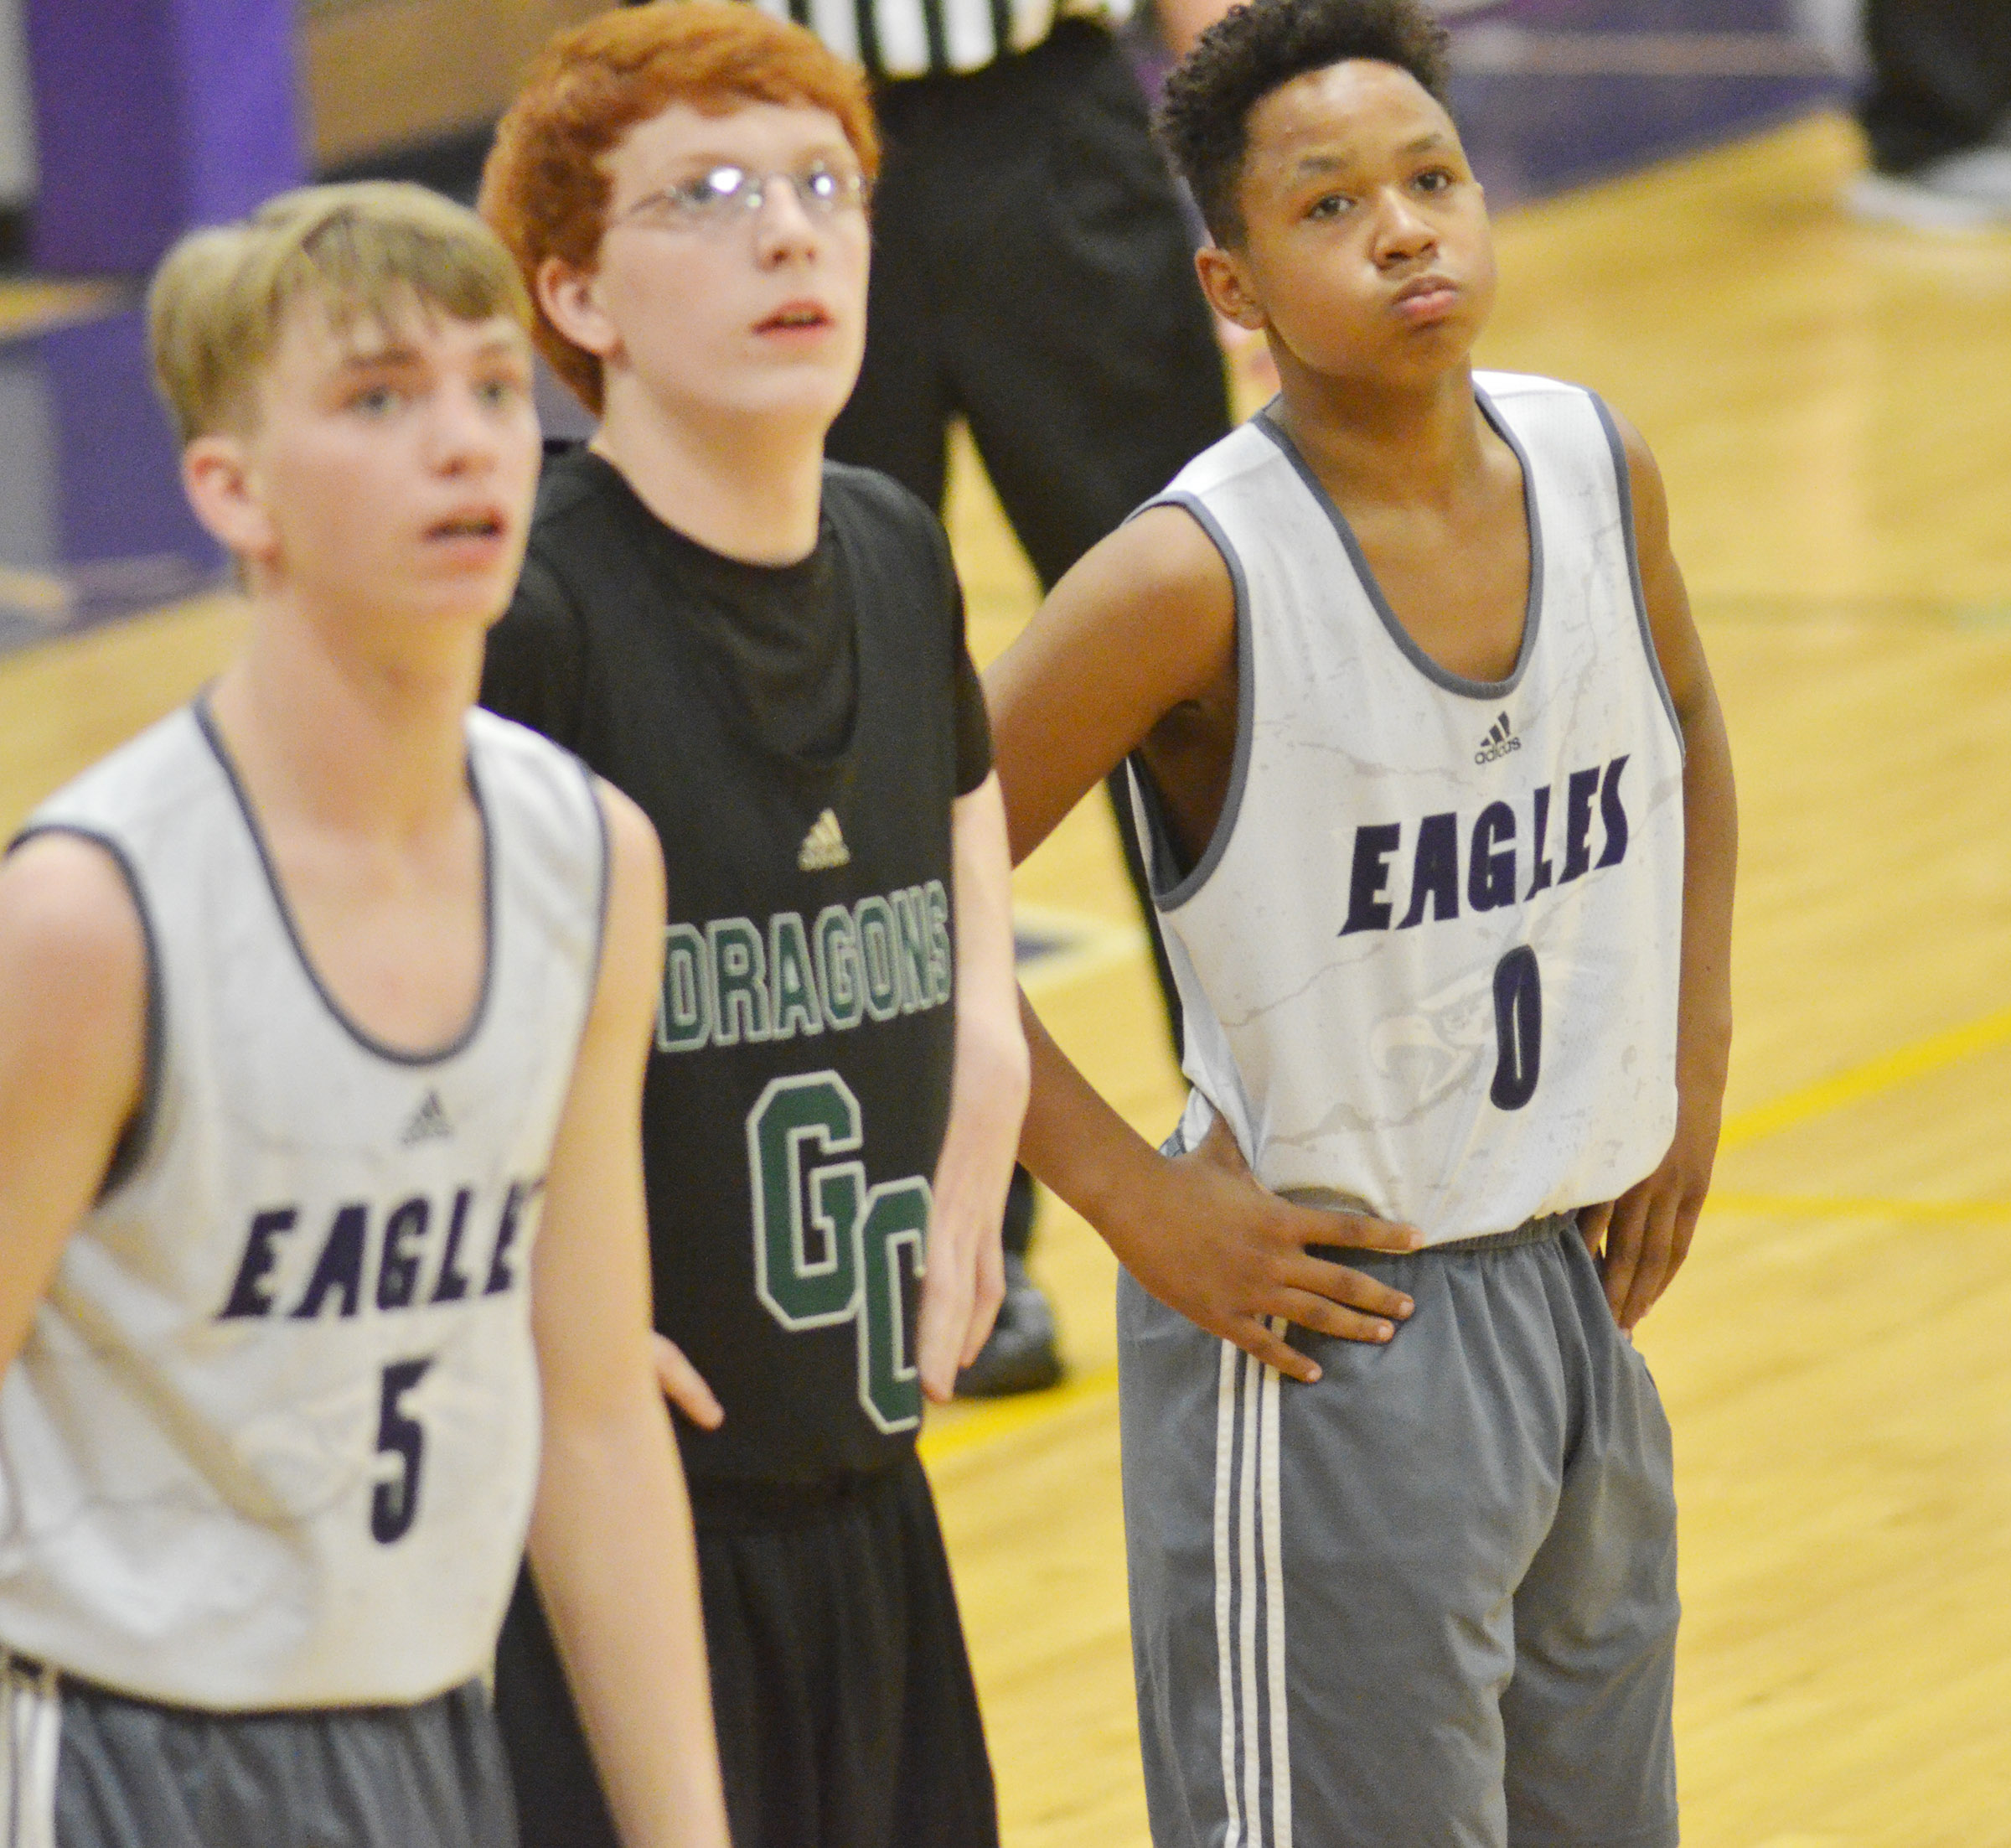 Campbellsville Middle School seventh-grader Deondre Weathers watches as a Green County player shoots a foul shot.